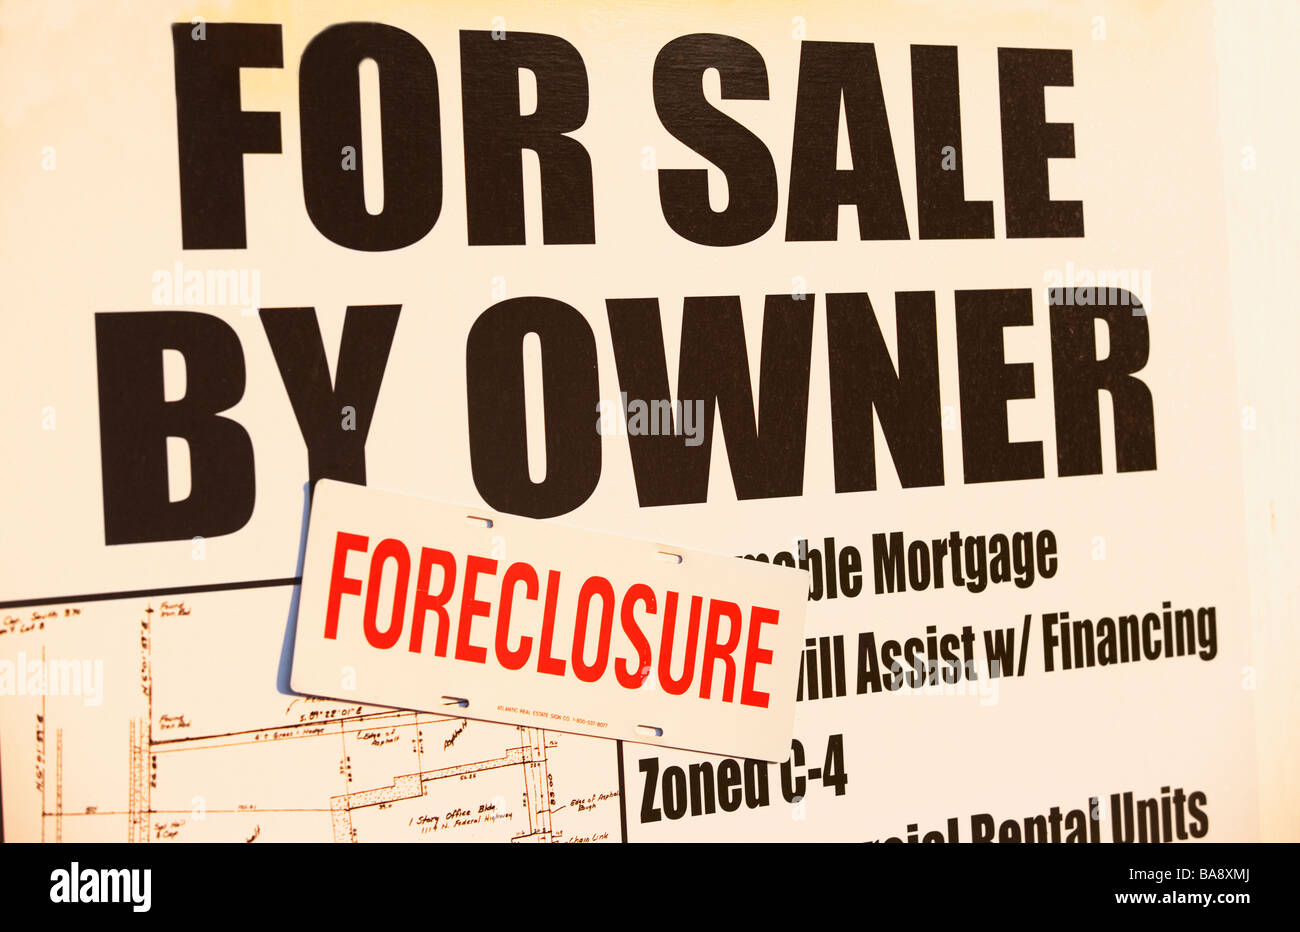 Foreclosure sale sign - Stock Image